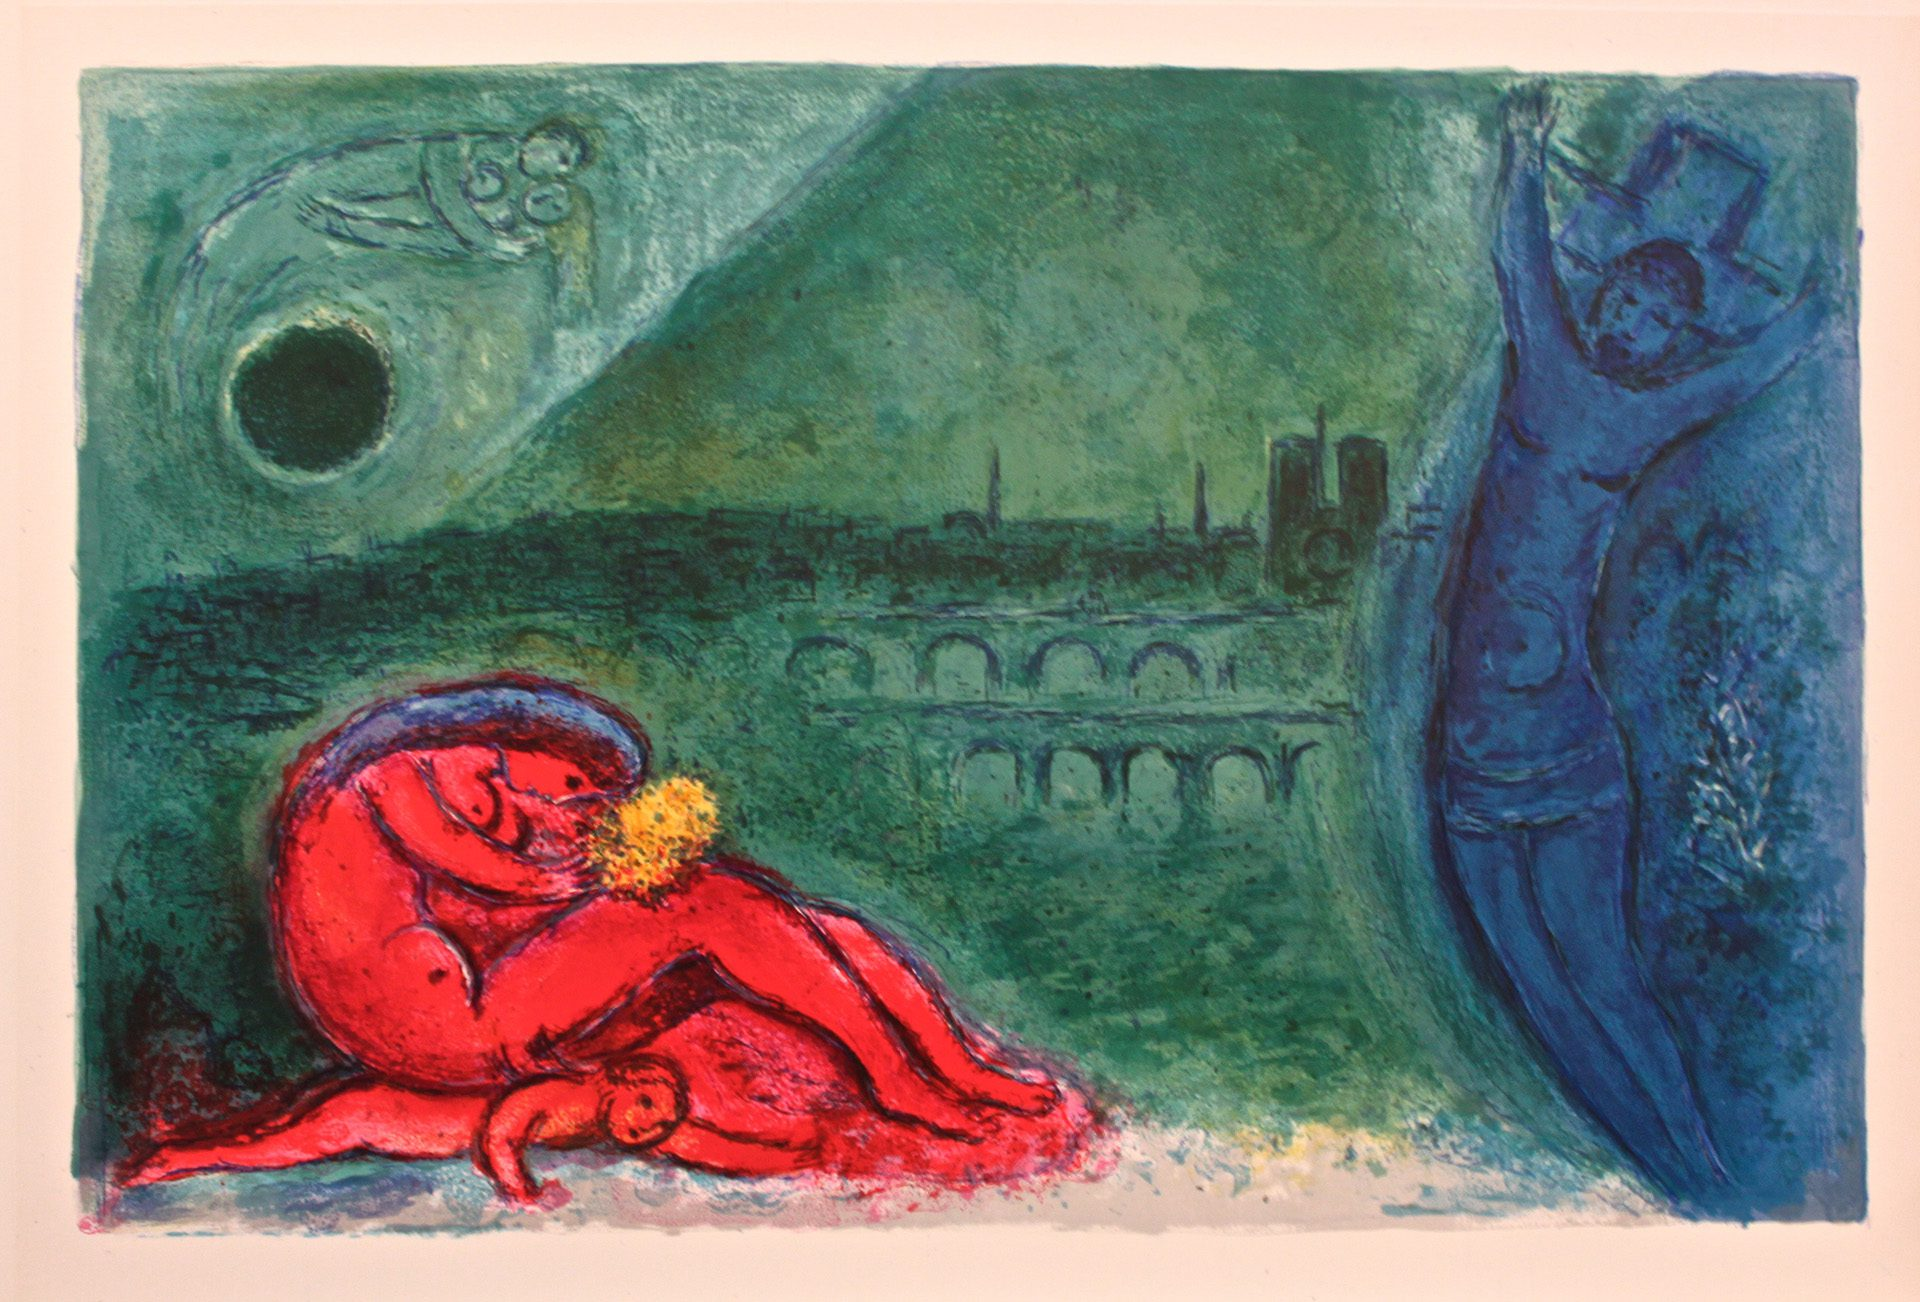 Chagall, Regards sur Paris, litho 1963. Dubbel.